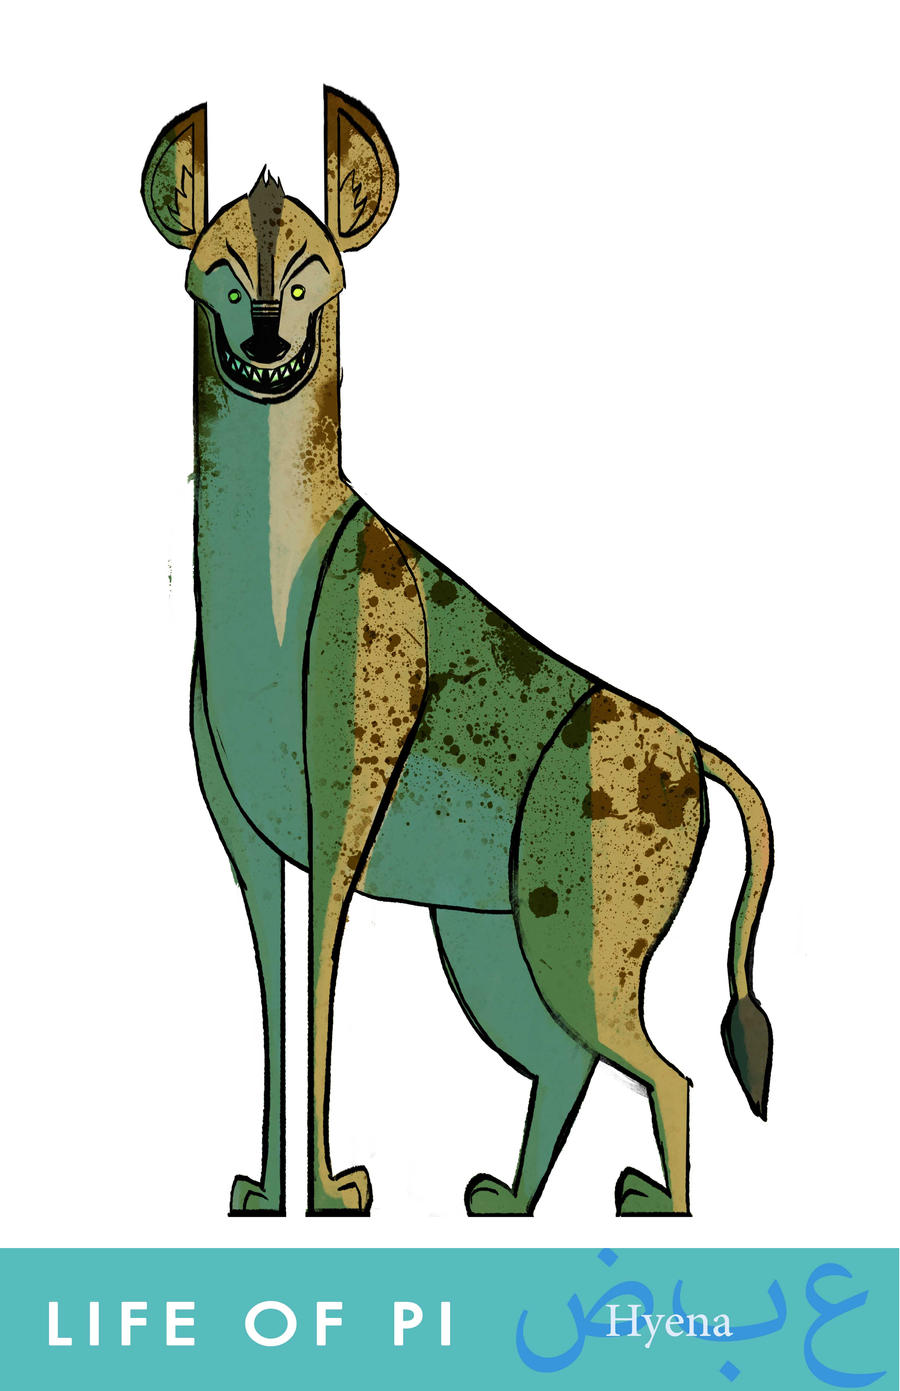 Life of pi hyena by yebkamin on deviantart for Life of pi characters animals